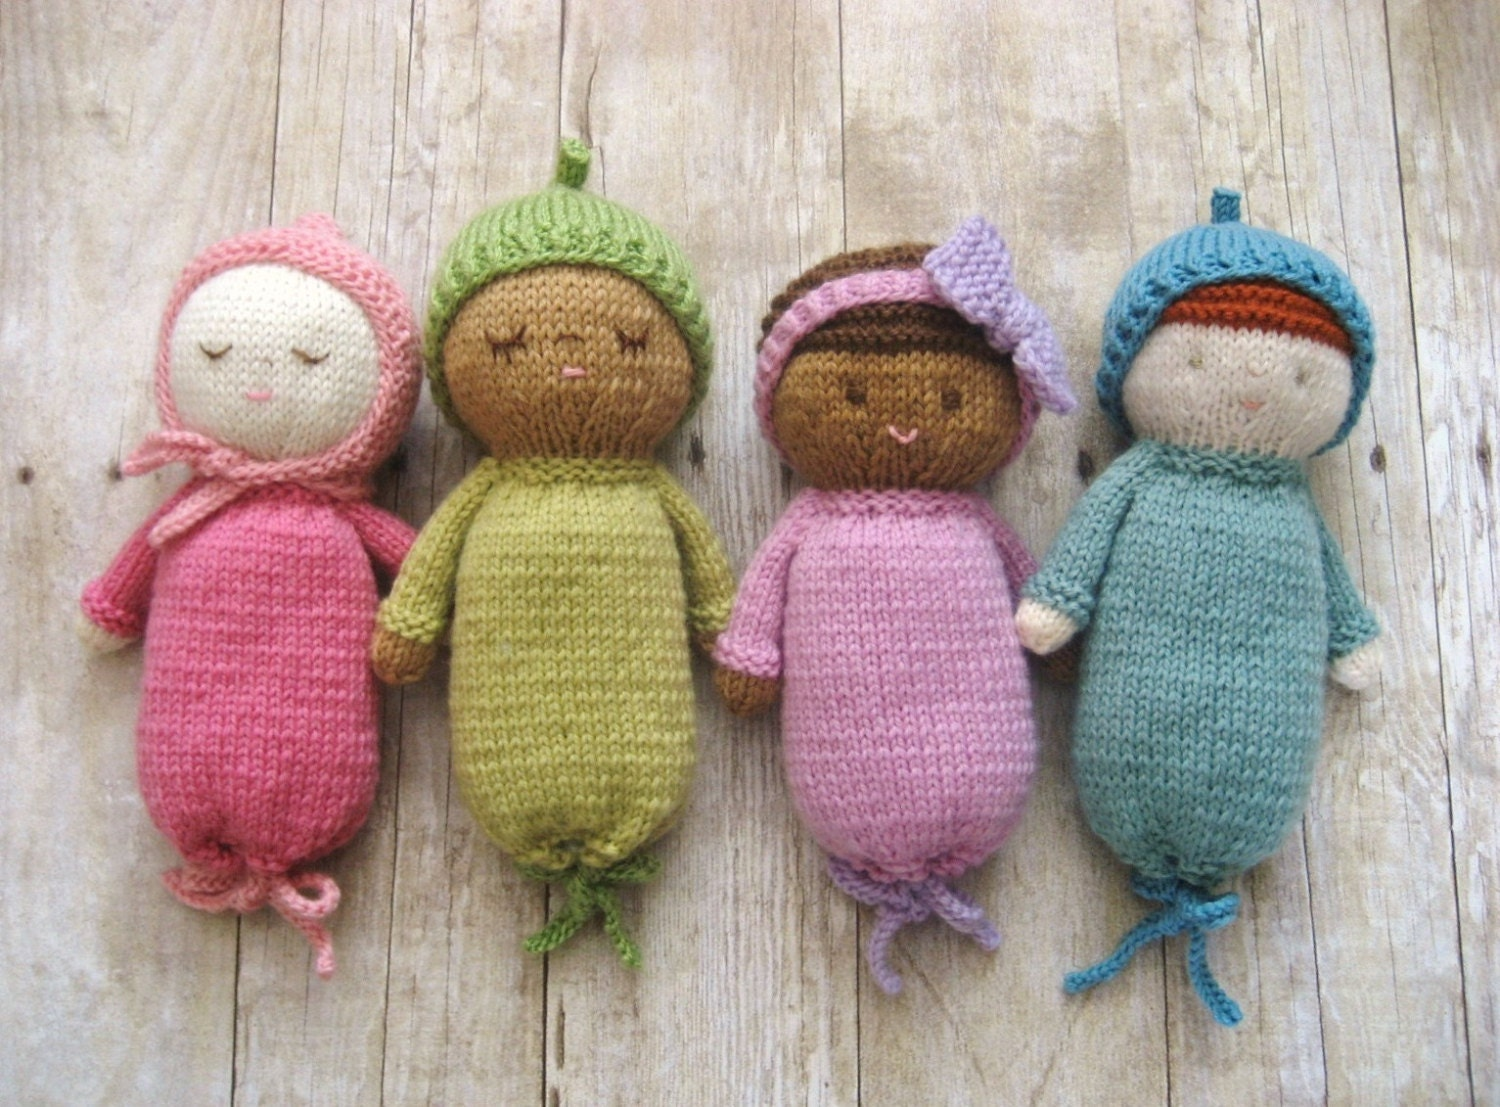 Crochet Amigurumi For Baby : Ravelry baby dragon amigurumi plush toy pattern by lily coulombe